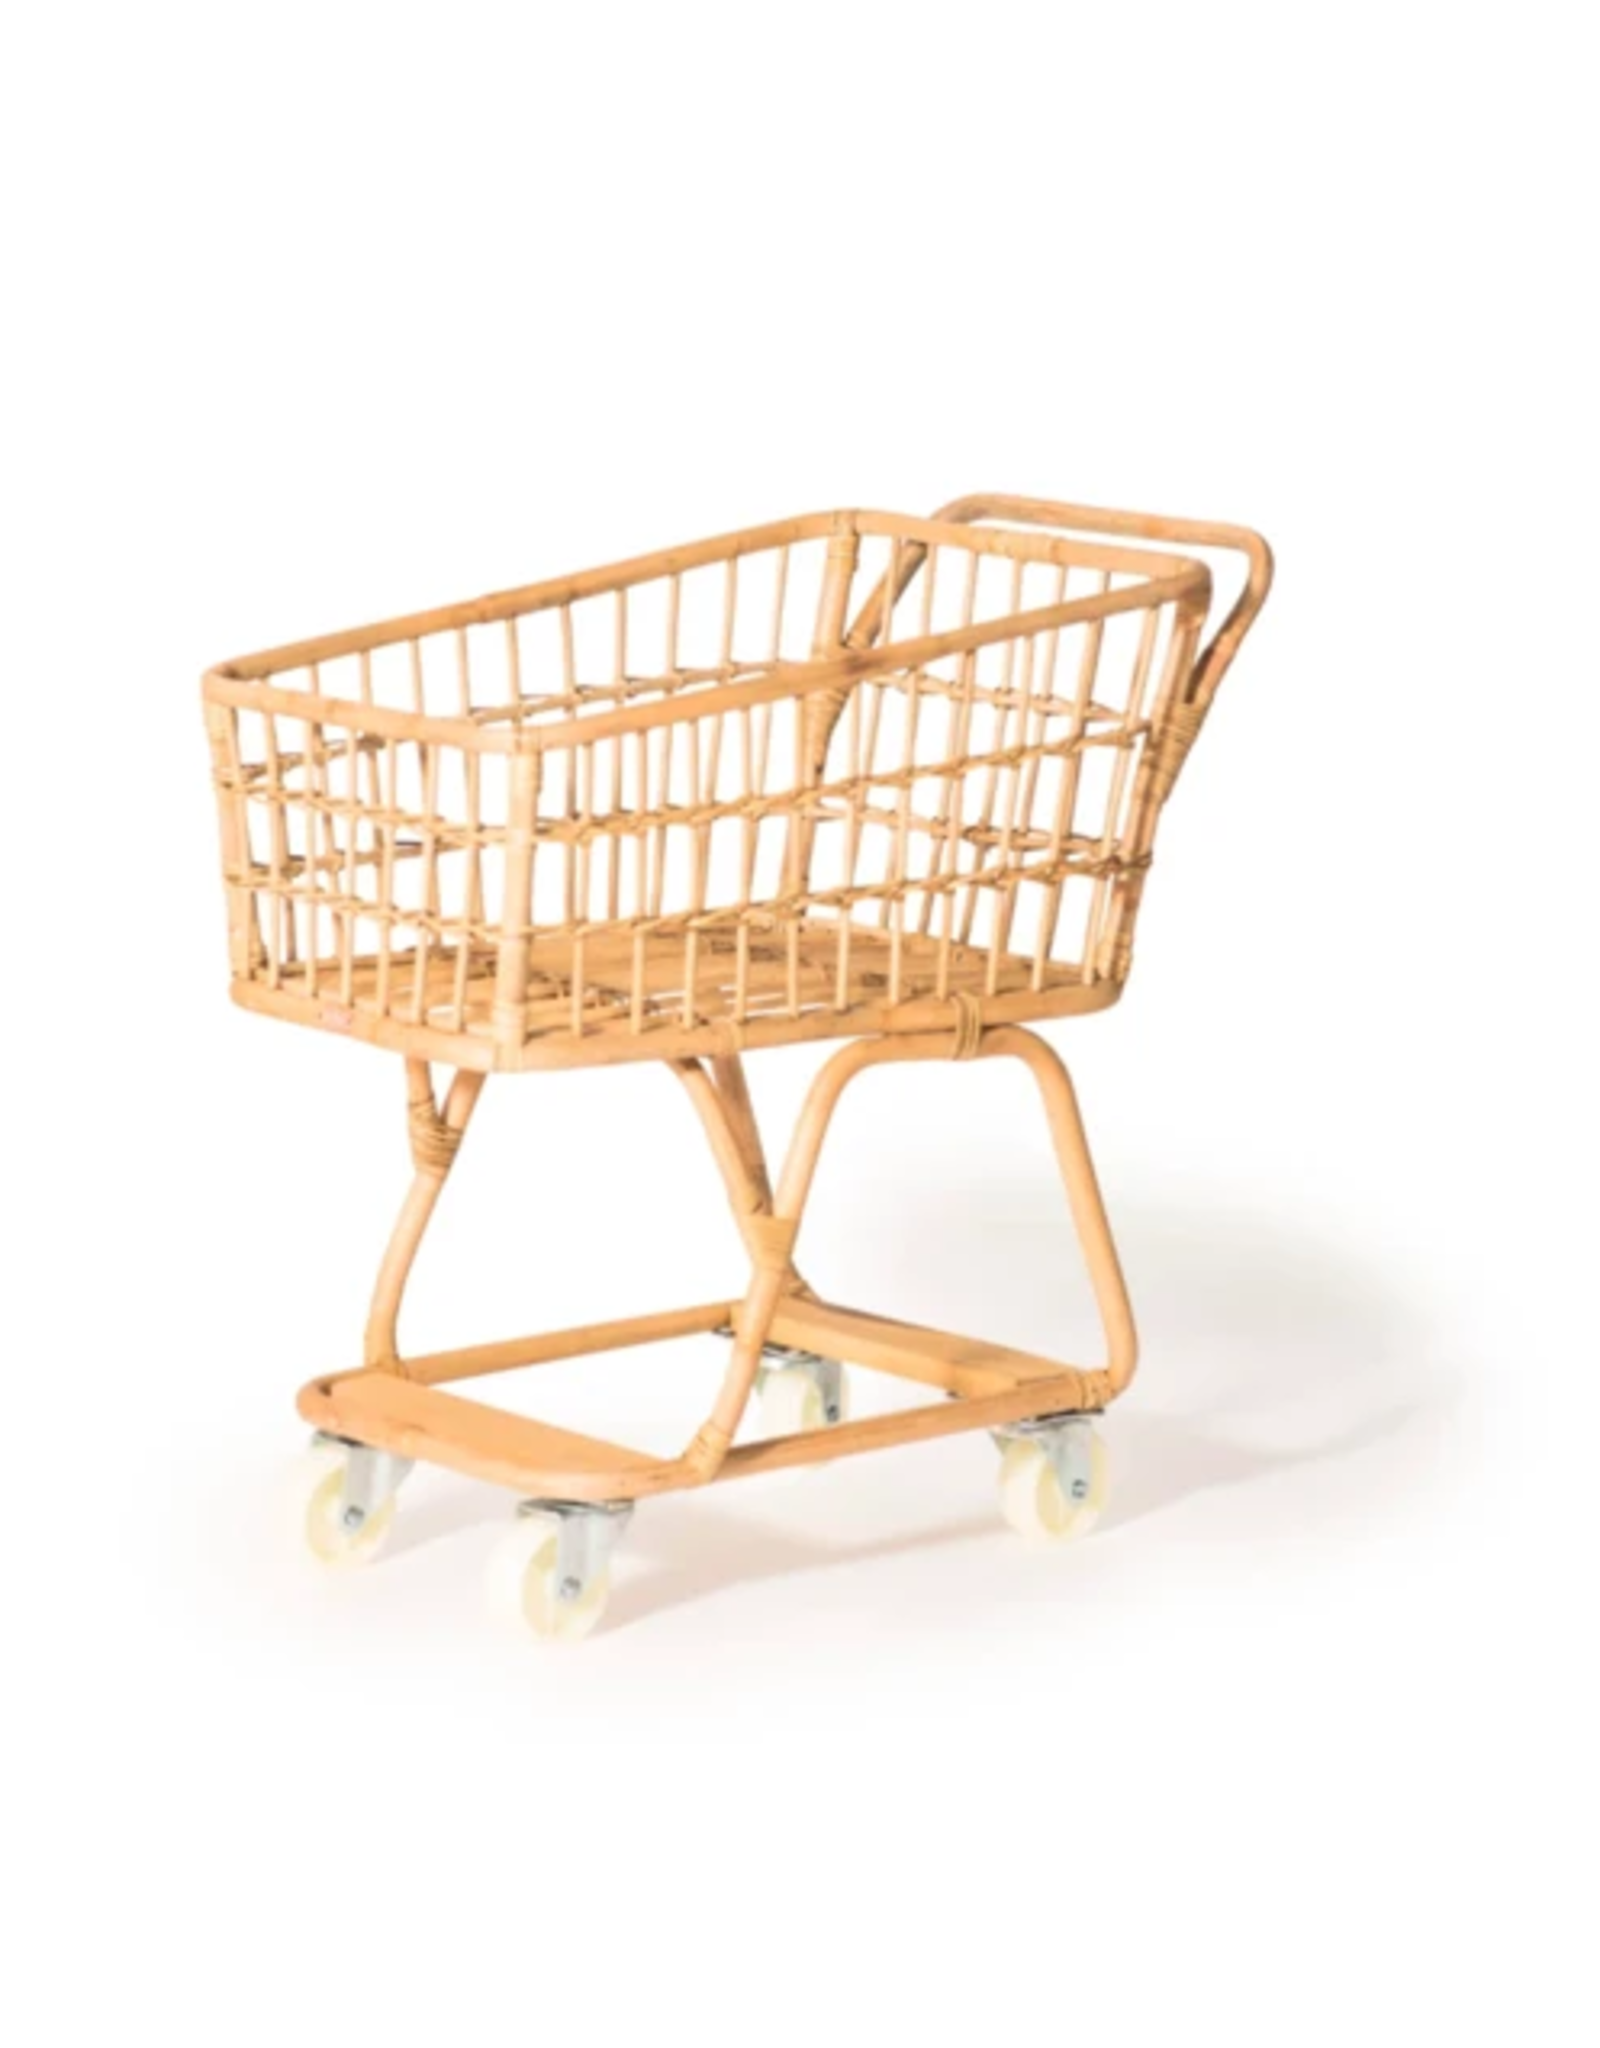 Poppie Toys Rattan Handmade Mini Shopping Cart